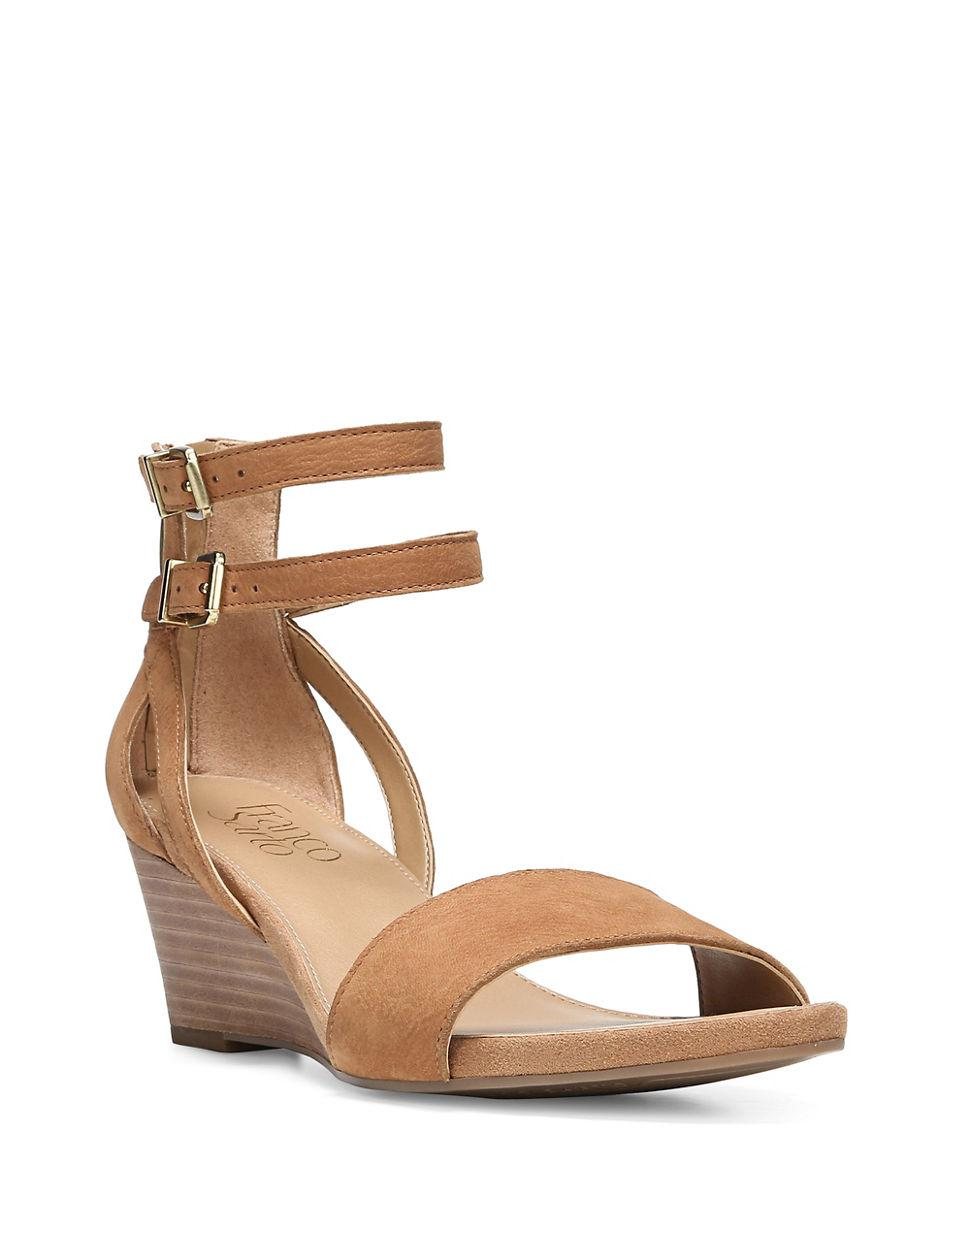 Lyst Franco Sarto Danissa Leather Ankle Strap Sandals In